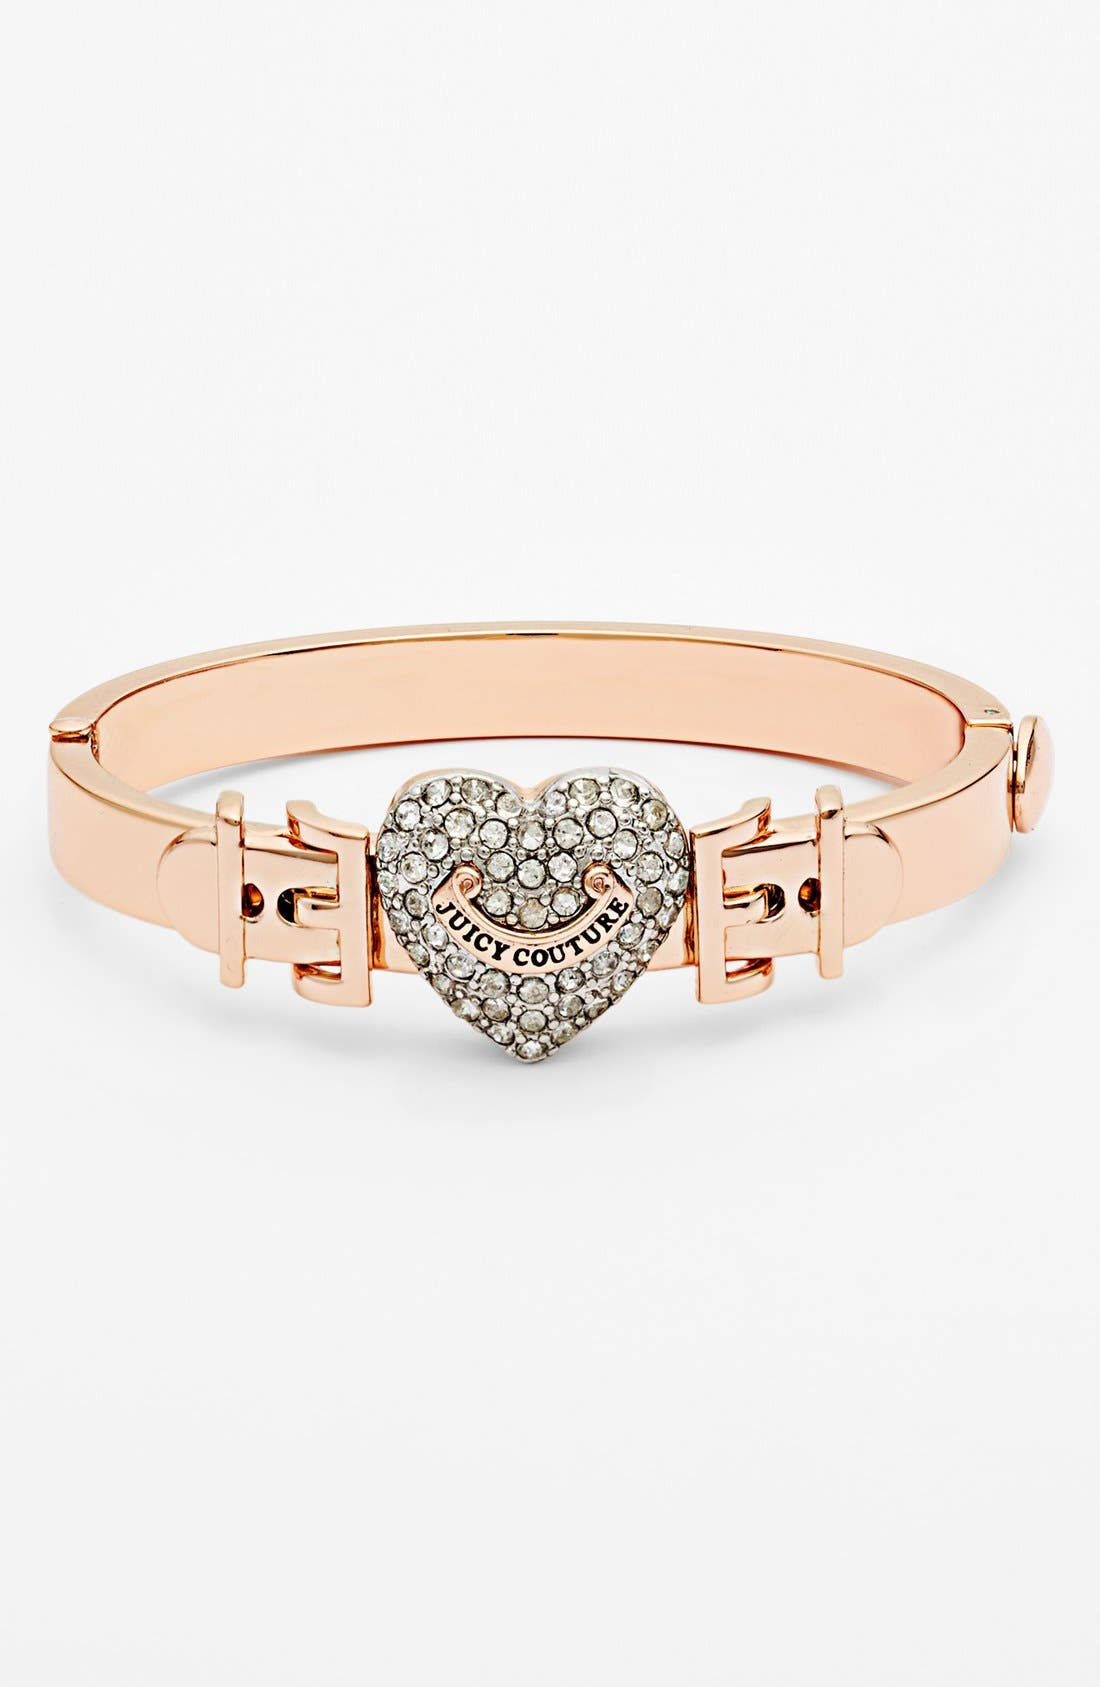 Alternate Image 1 Selected - Juicy Couture 'Juicy at Heart' Pavé Heart Buckle Hinged Bangle